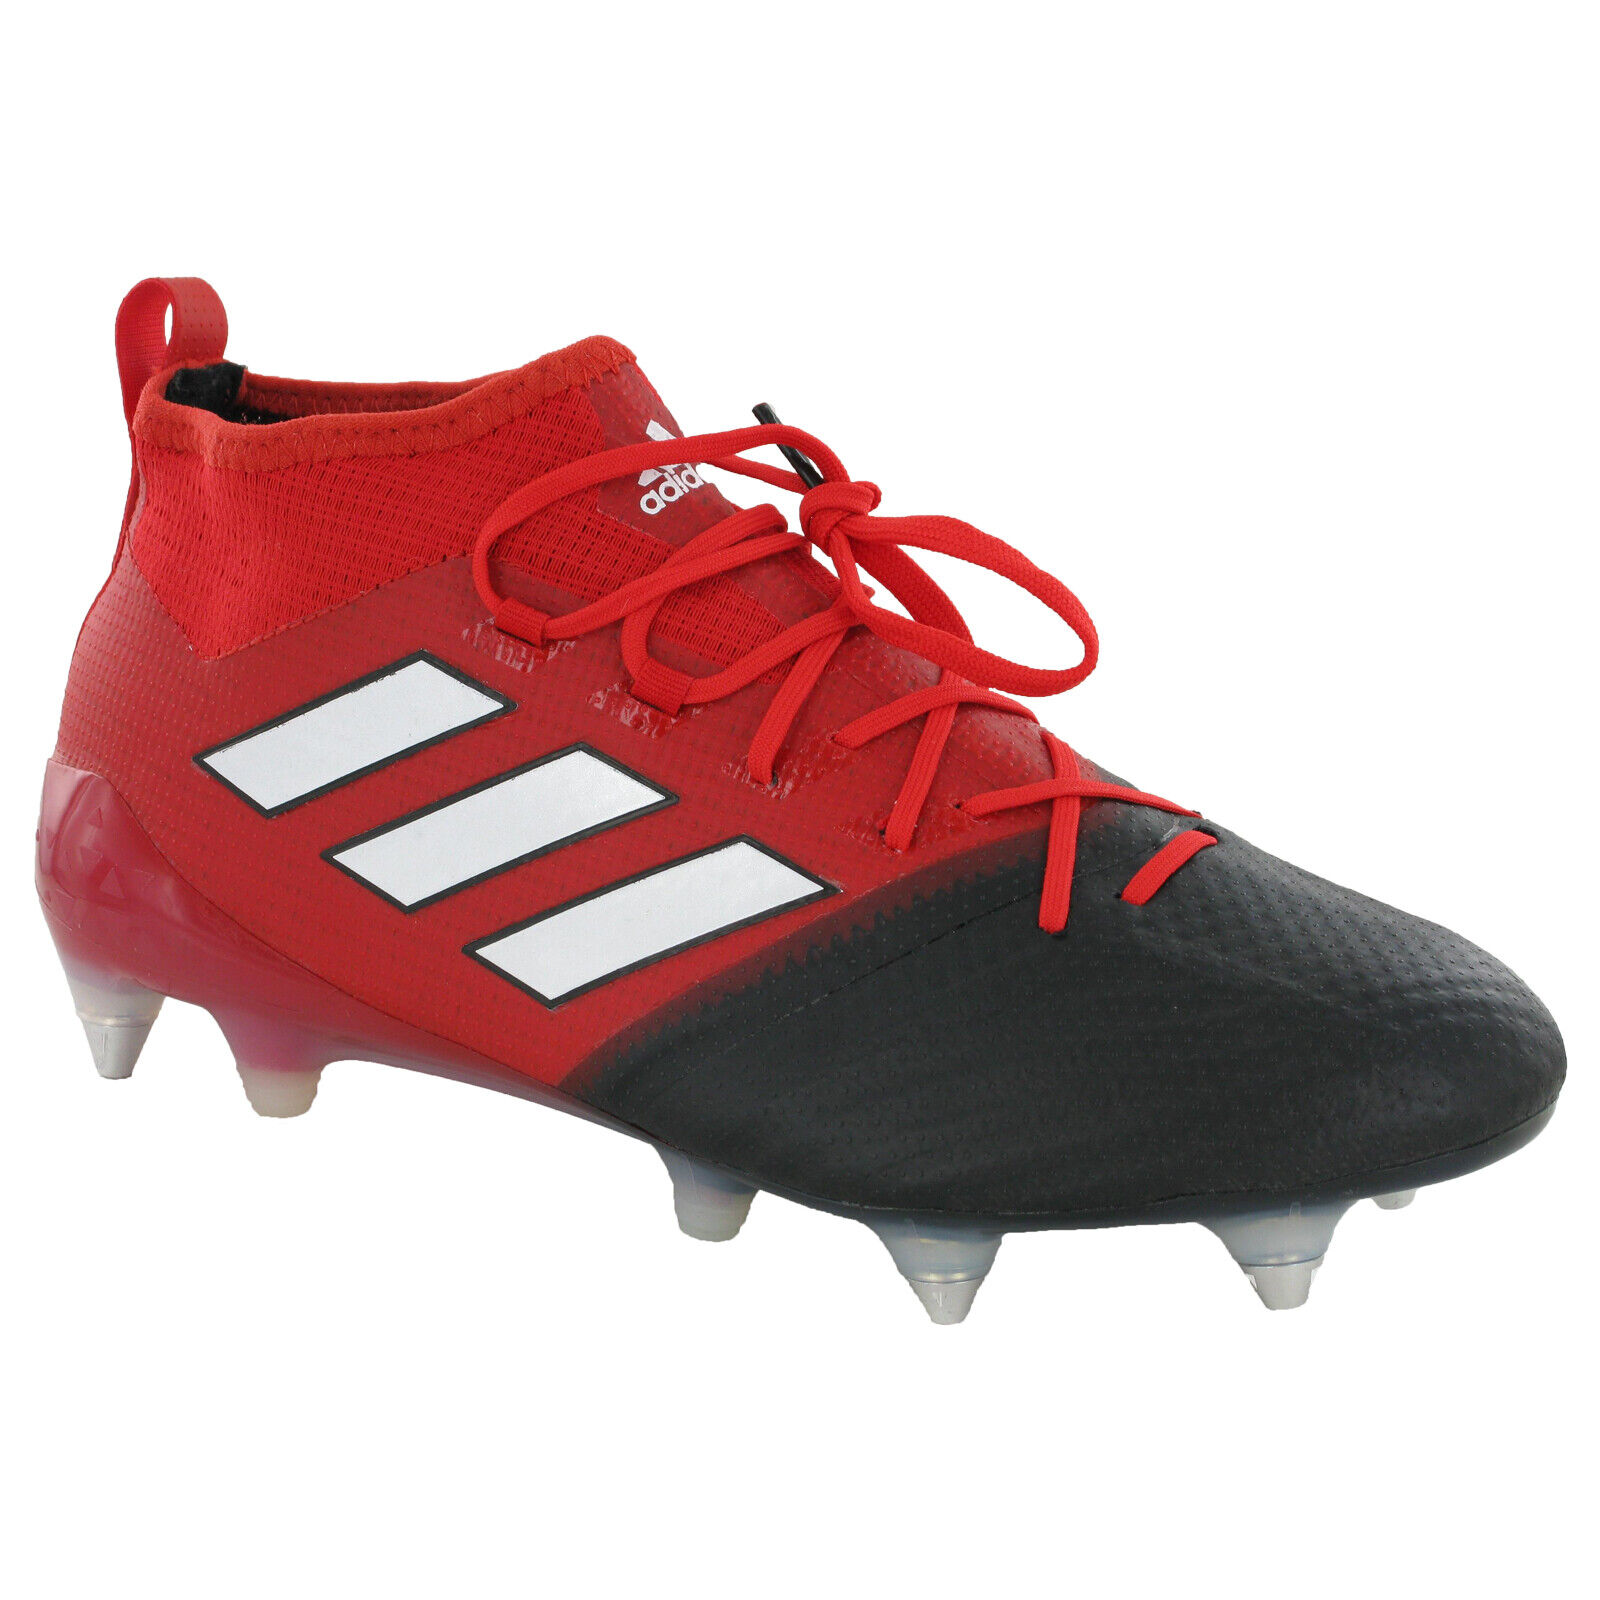 new styles the sale of shoes offer discounts Adidas ACE 17.1 PRIMEKNIT SG Football Boots Mens Studded Soccer ...